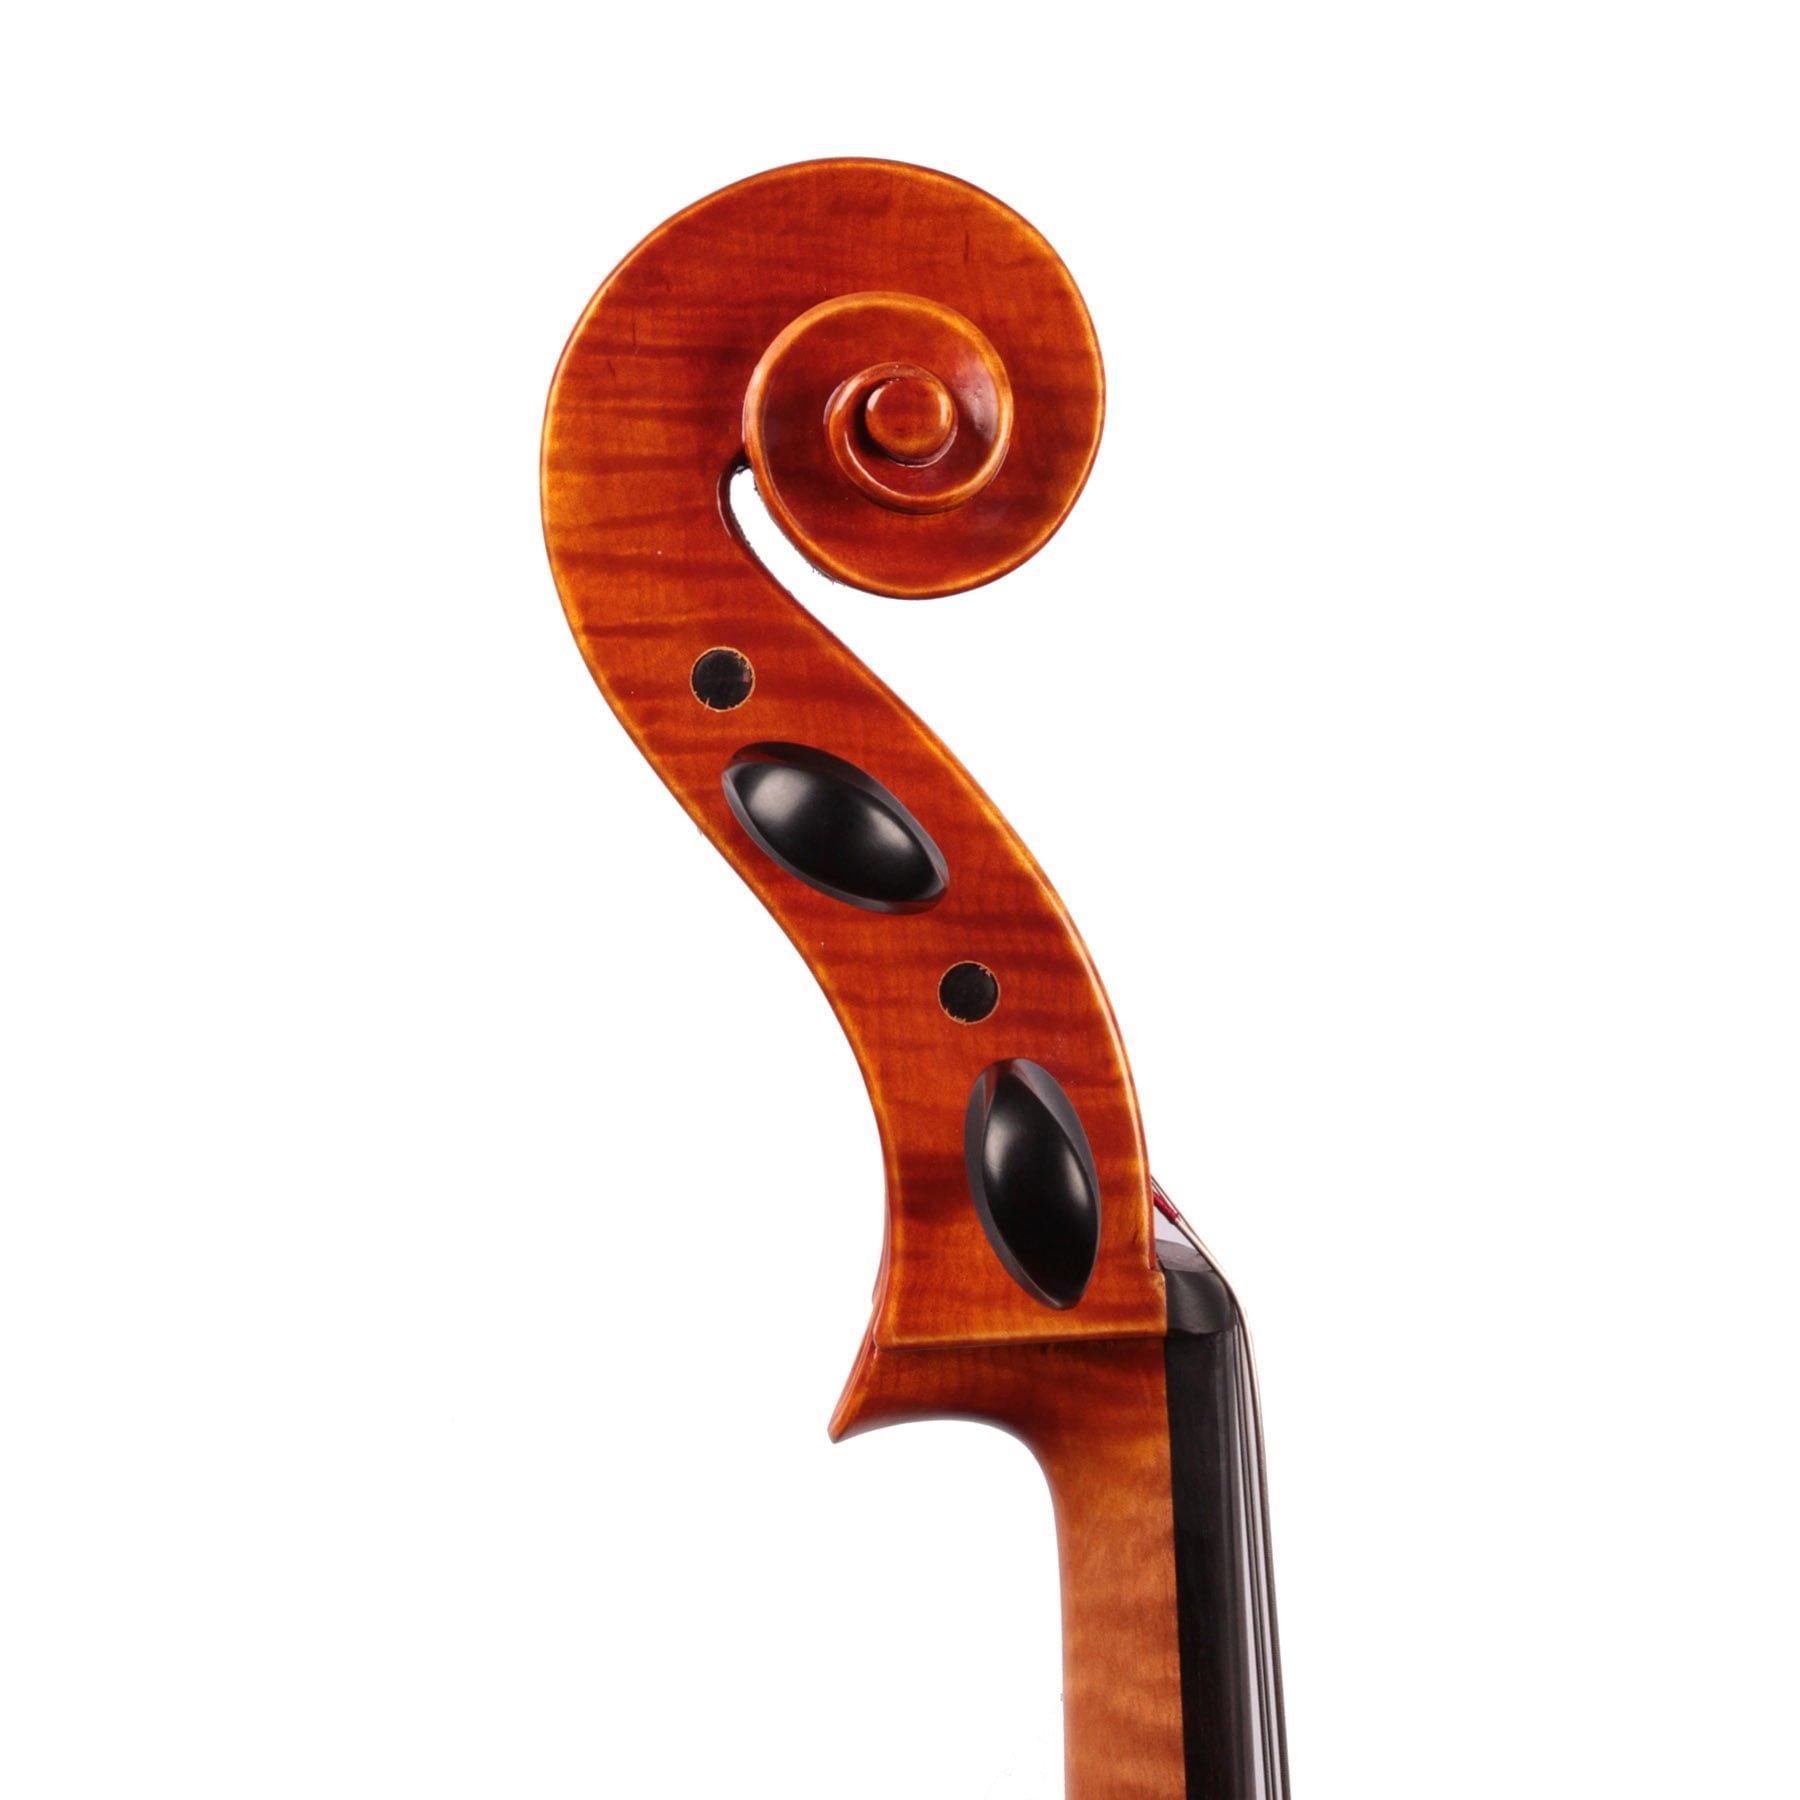 Jay Haide Superior Cello side view of the scroll